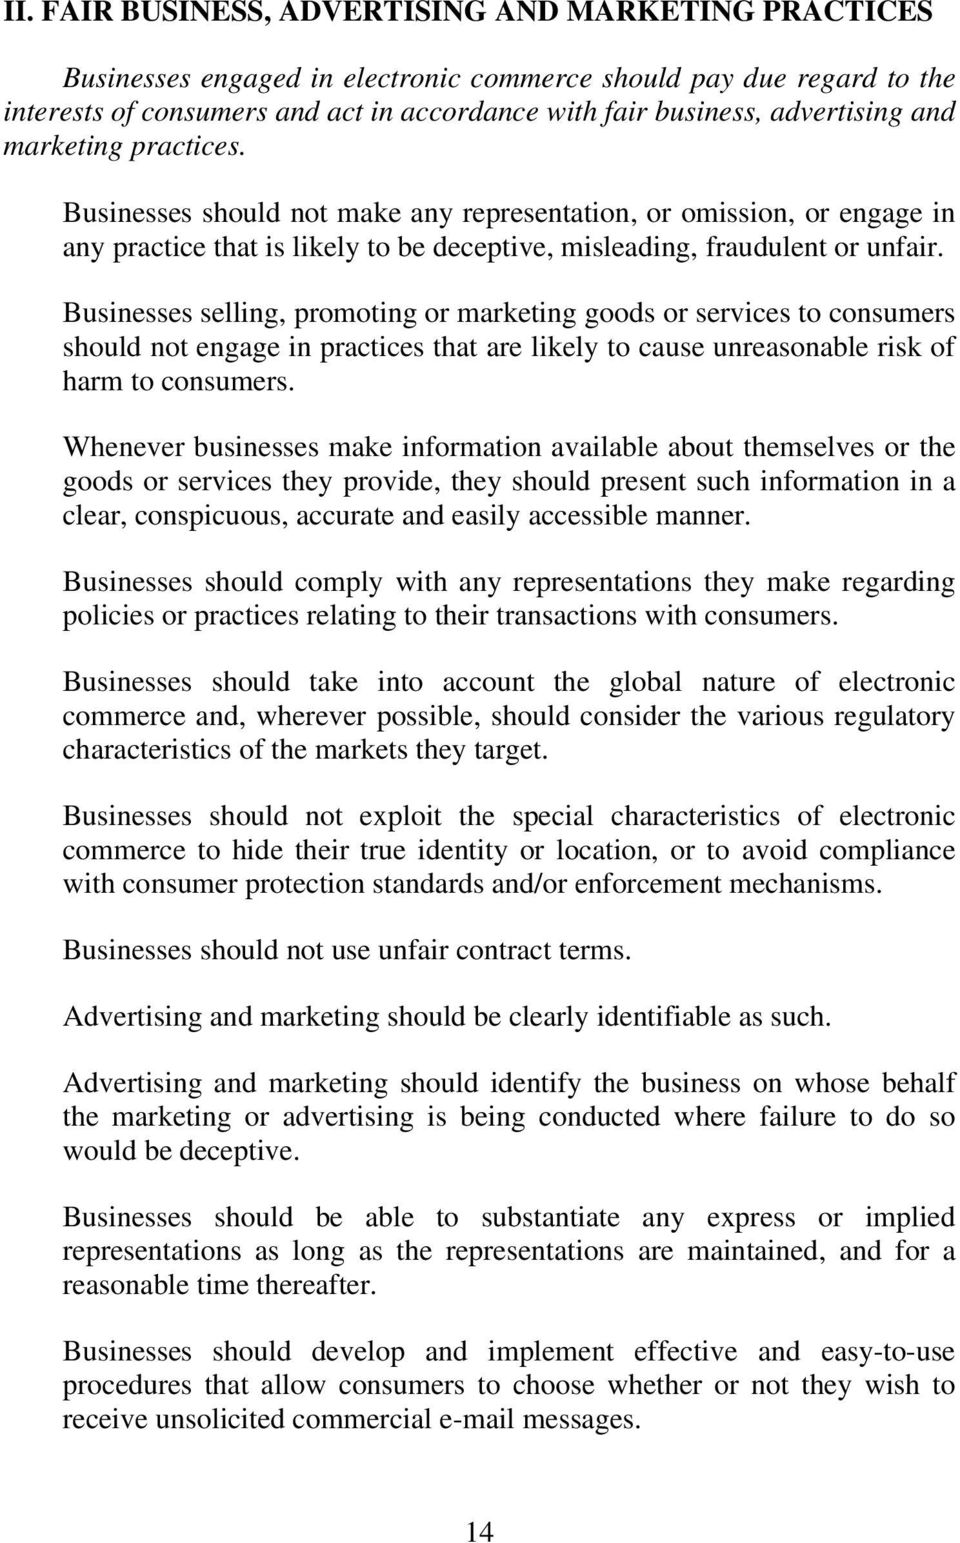 Businesses selling, promoting or marketing goods or services to consumers should not engage in practices that are likely to cause unreasonable risk of harm to consumers.